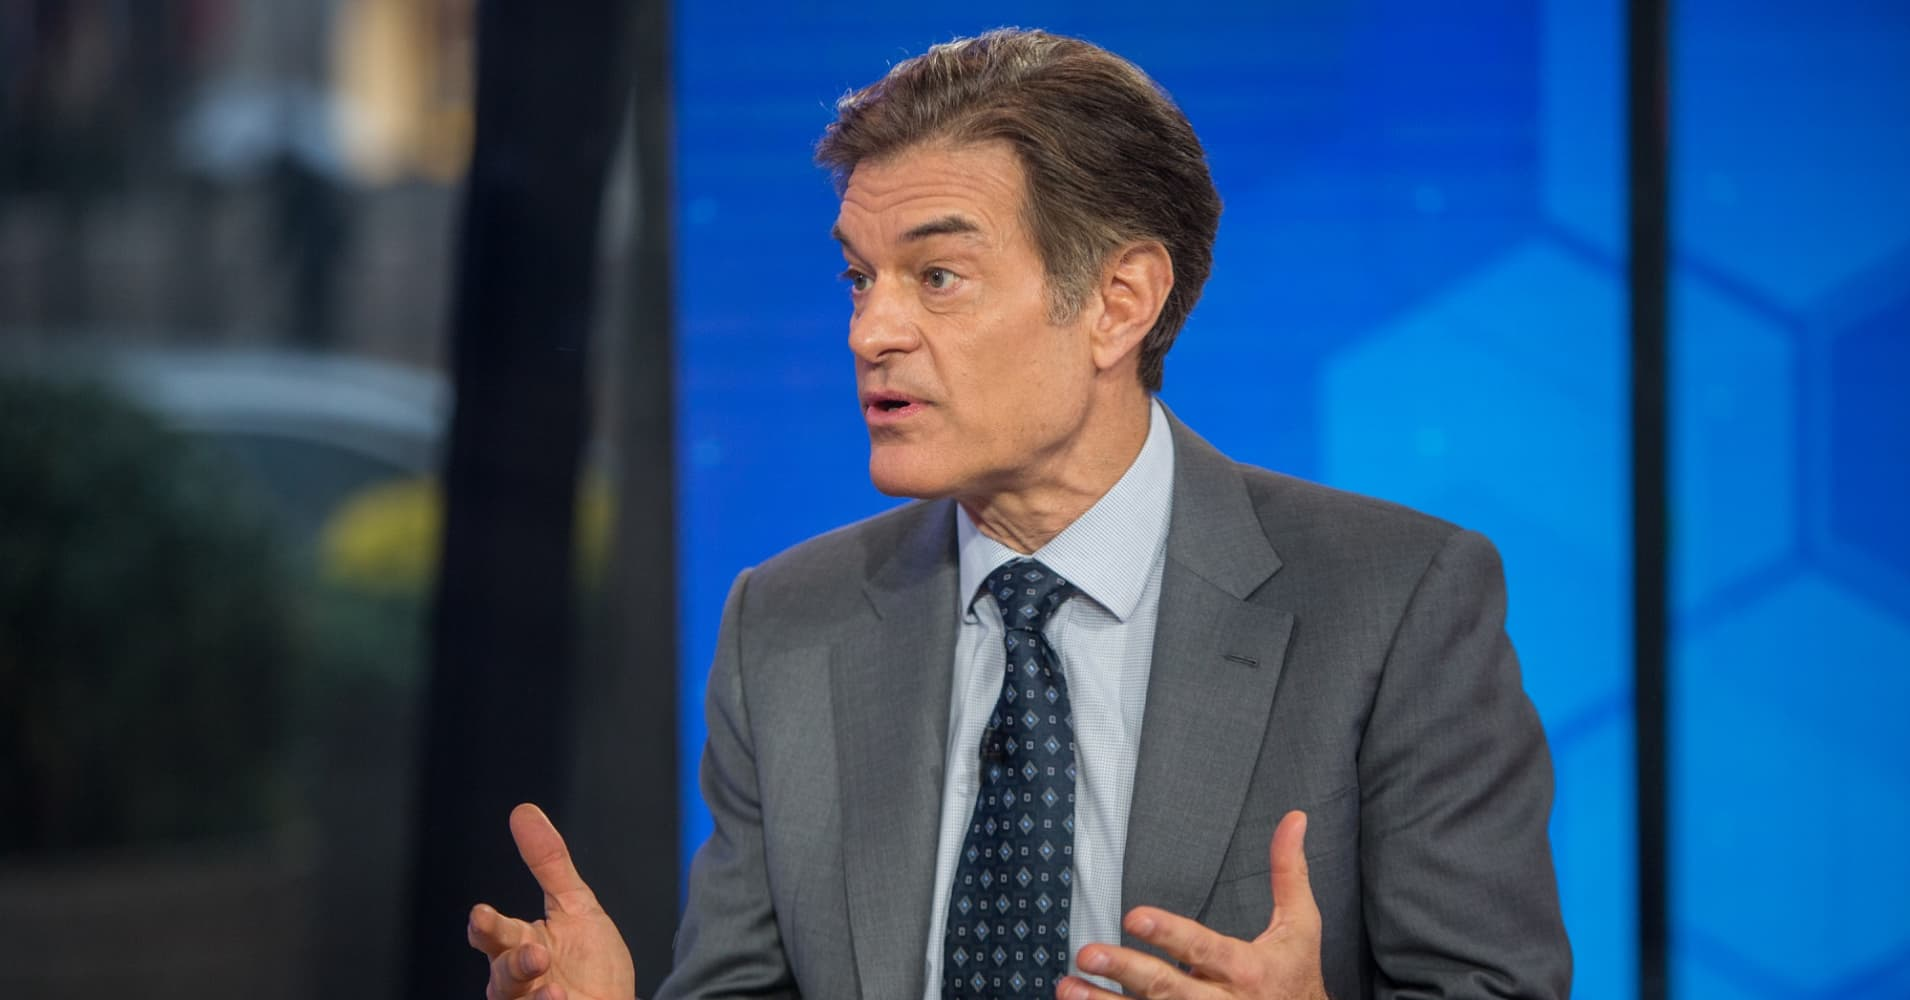 Dr. Oz on the Today Show